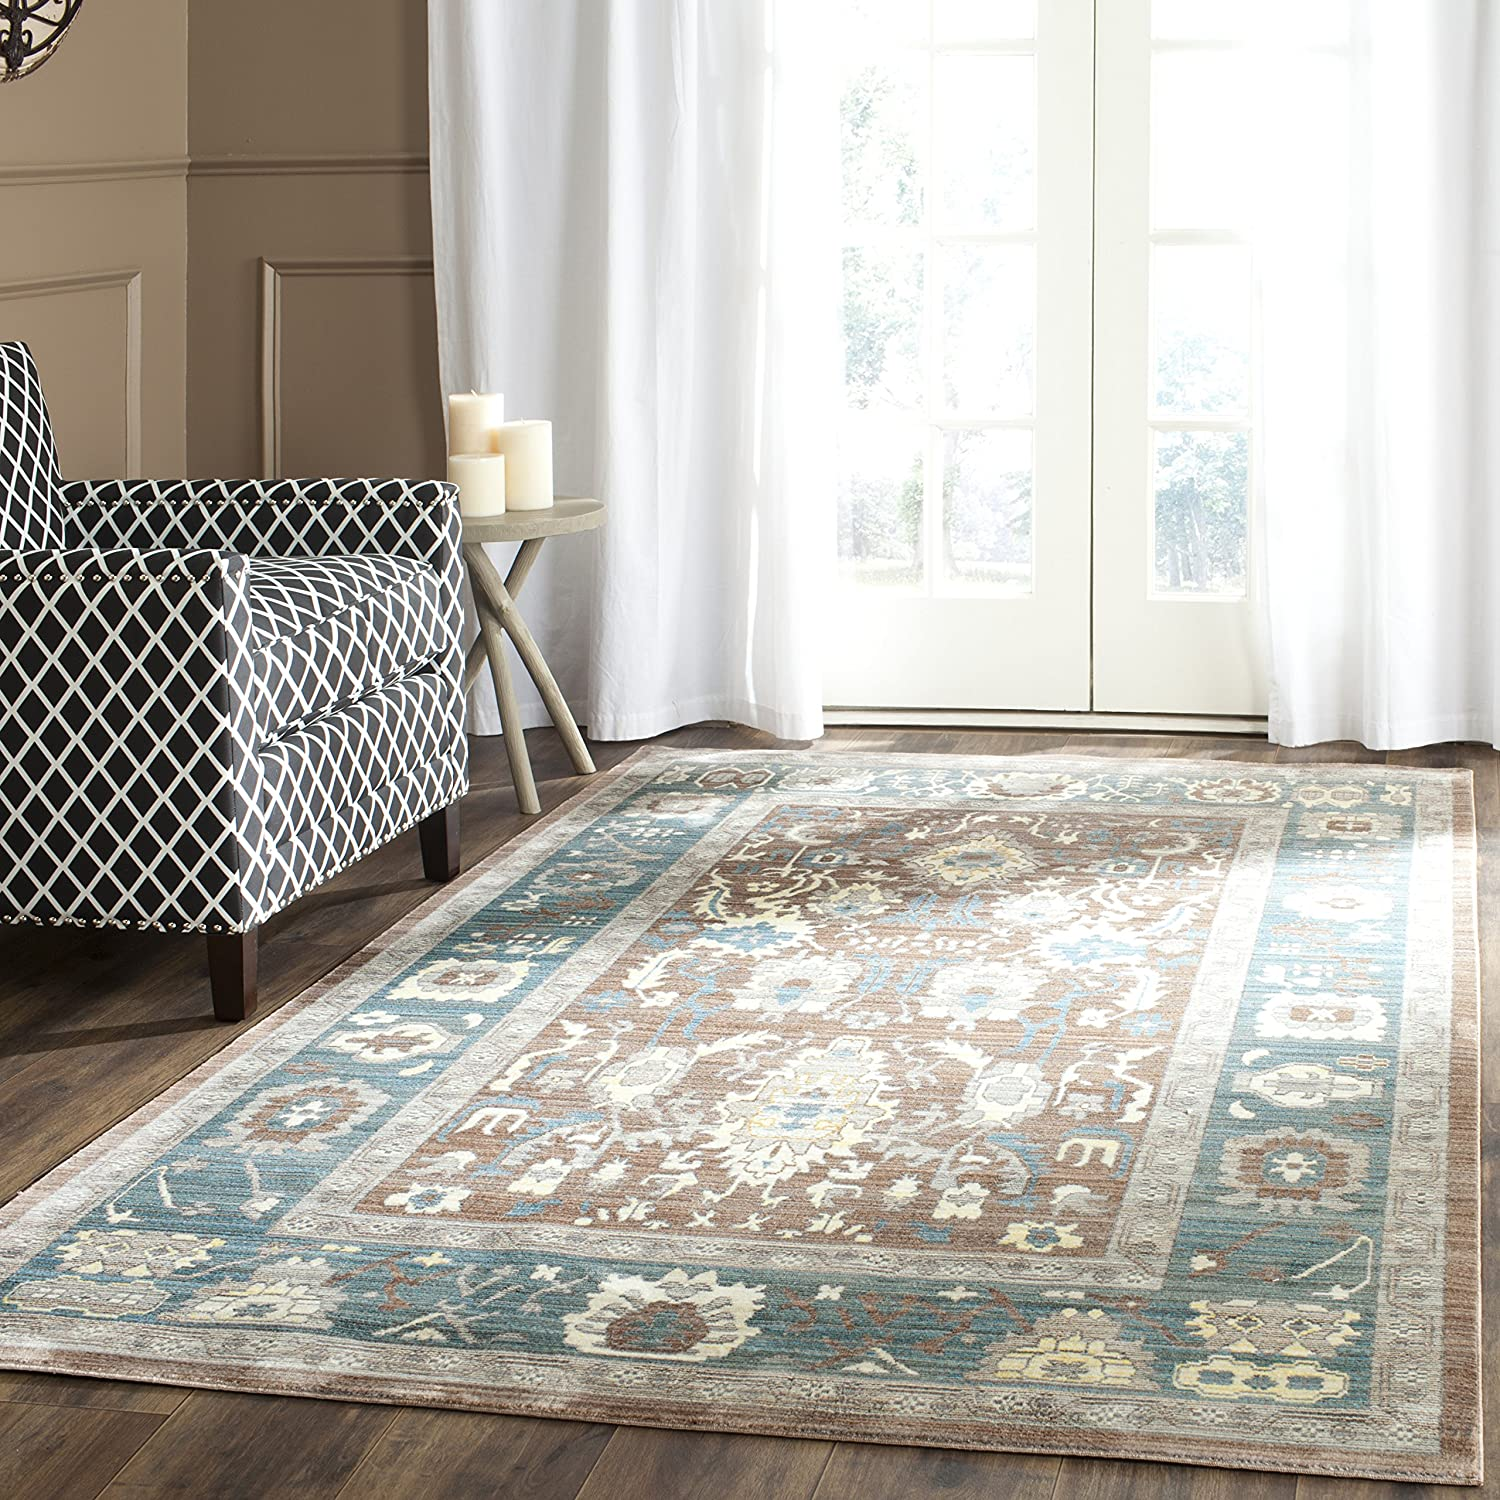 Safavieh Valencia Collection VAL122B Chocolate and Alpine Vintage Distressed Silky Polyester Area Rug (8' x 10')